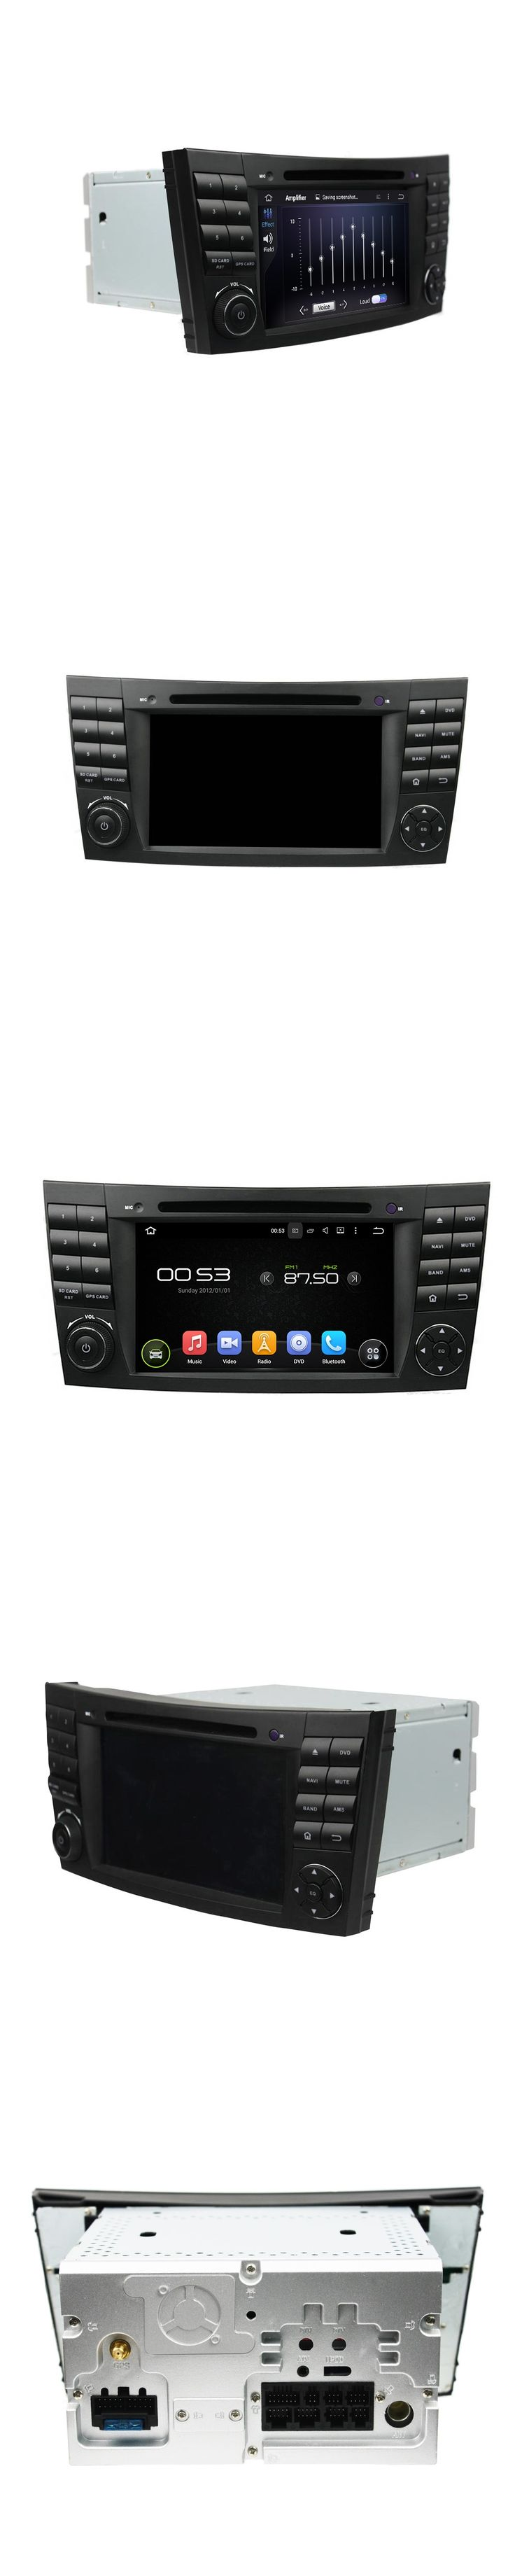 7 Inch Android 5.1.1 Quad Core HD1024*600 Car DVD For BENZ With Navigation Bluetooth Radio WIFI For W211 W219 W463 2002-2008